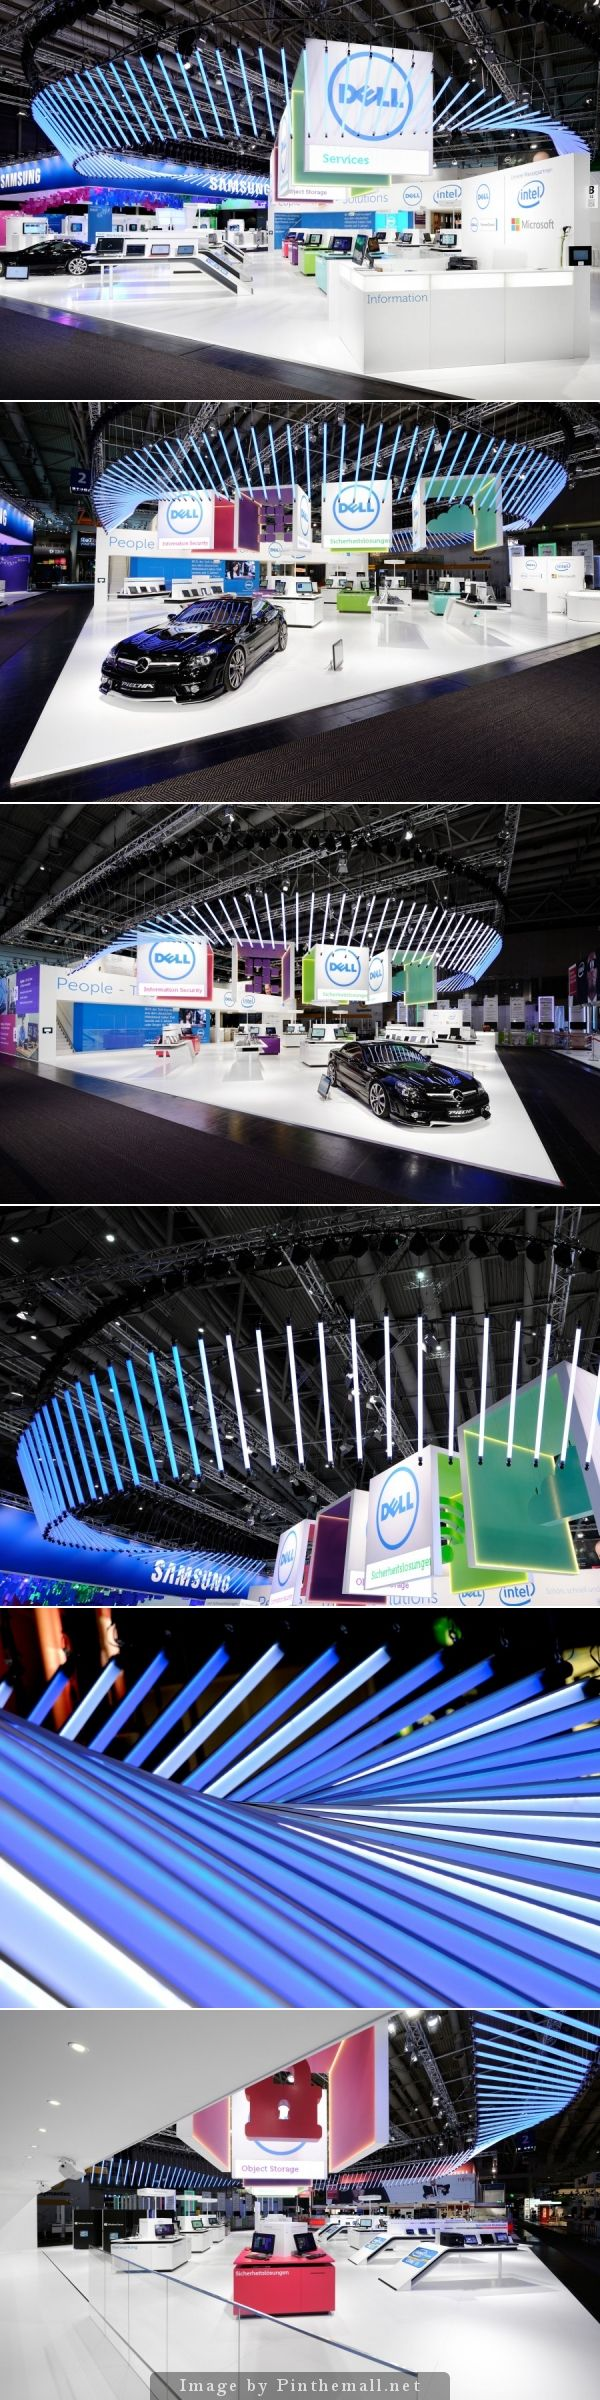 the DELL trade fair stand at CeBIT trade fair 2013 in Hanover - created via http://pinthemall.net